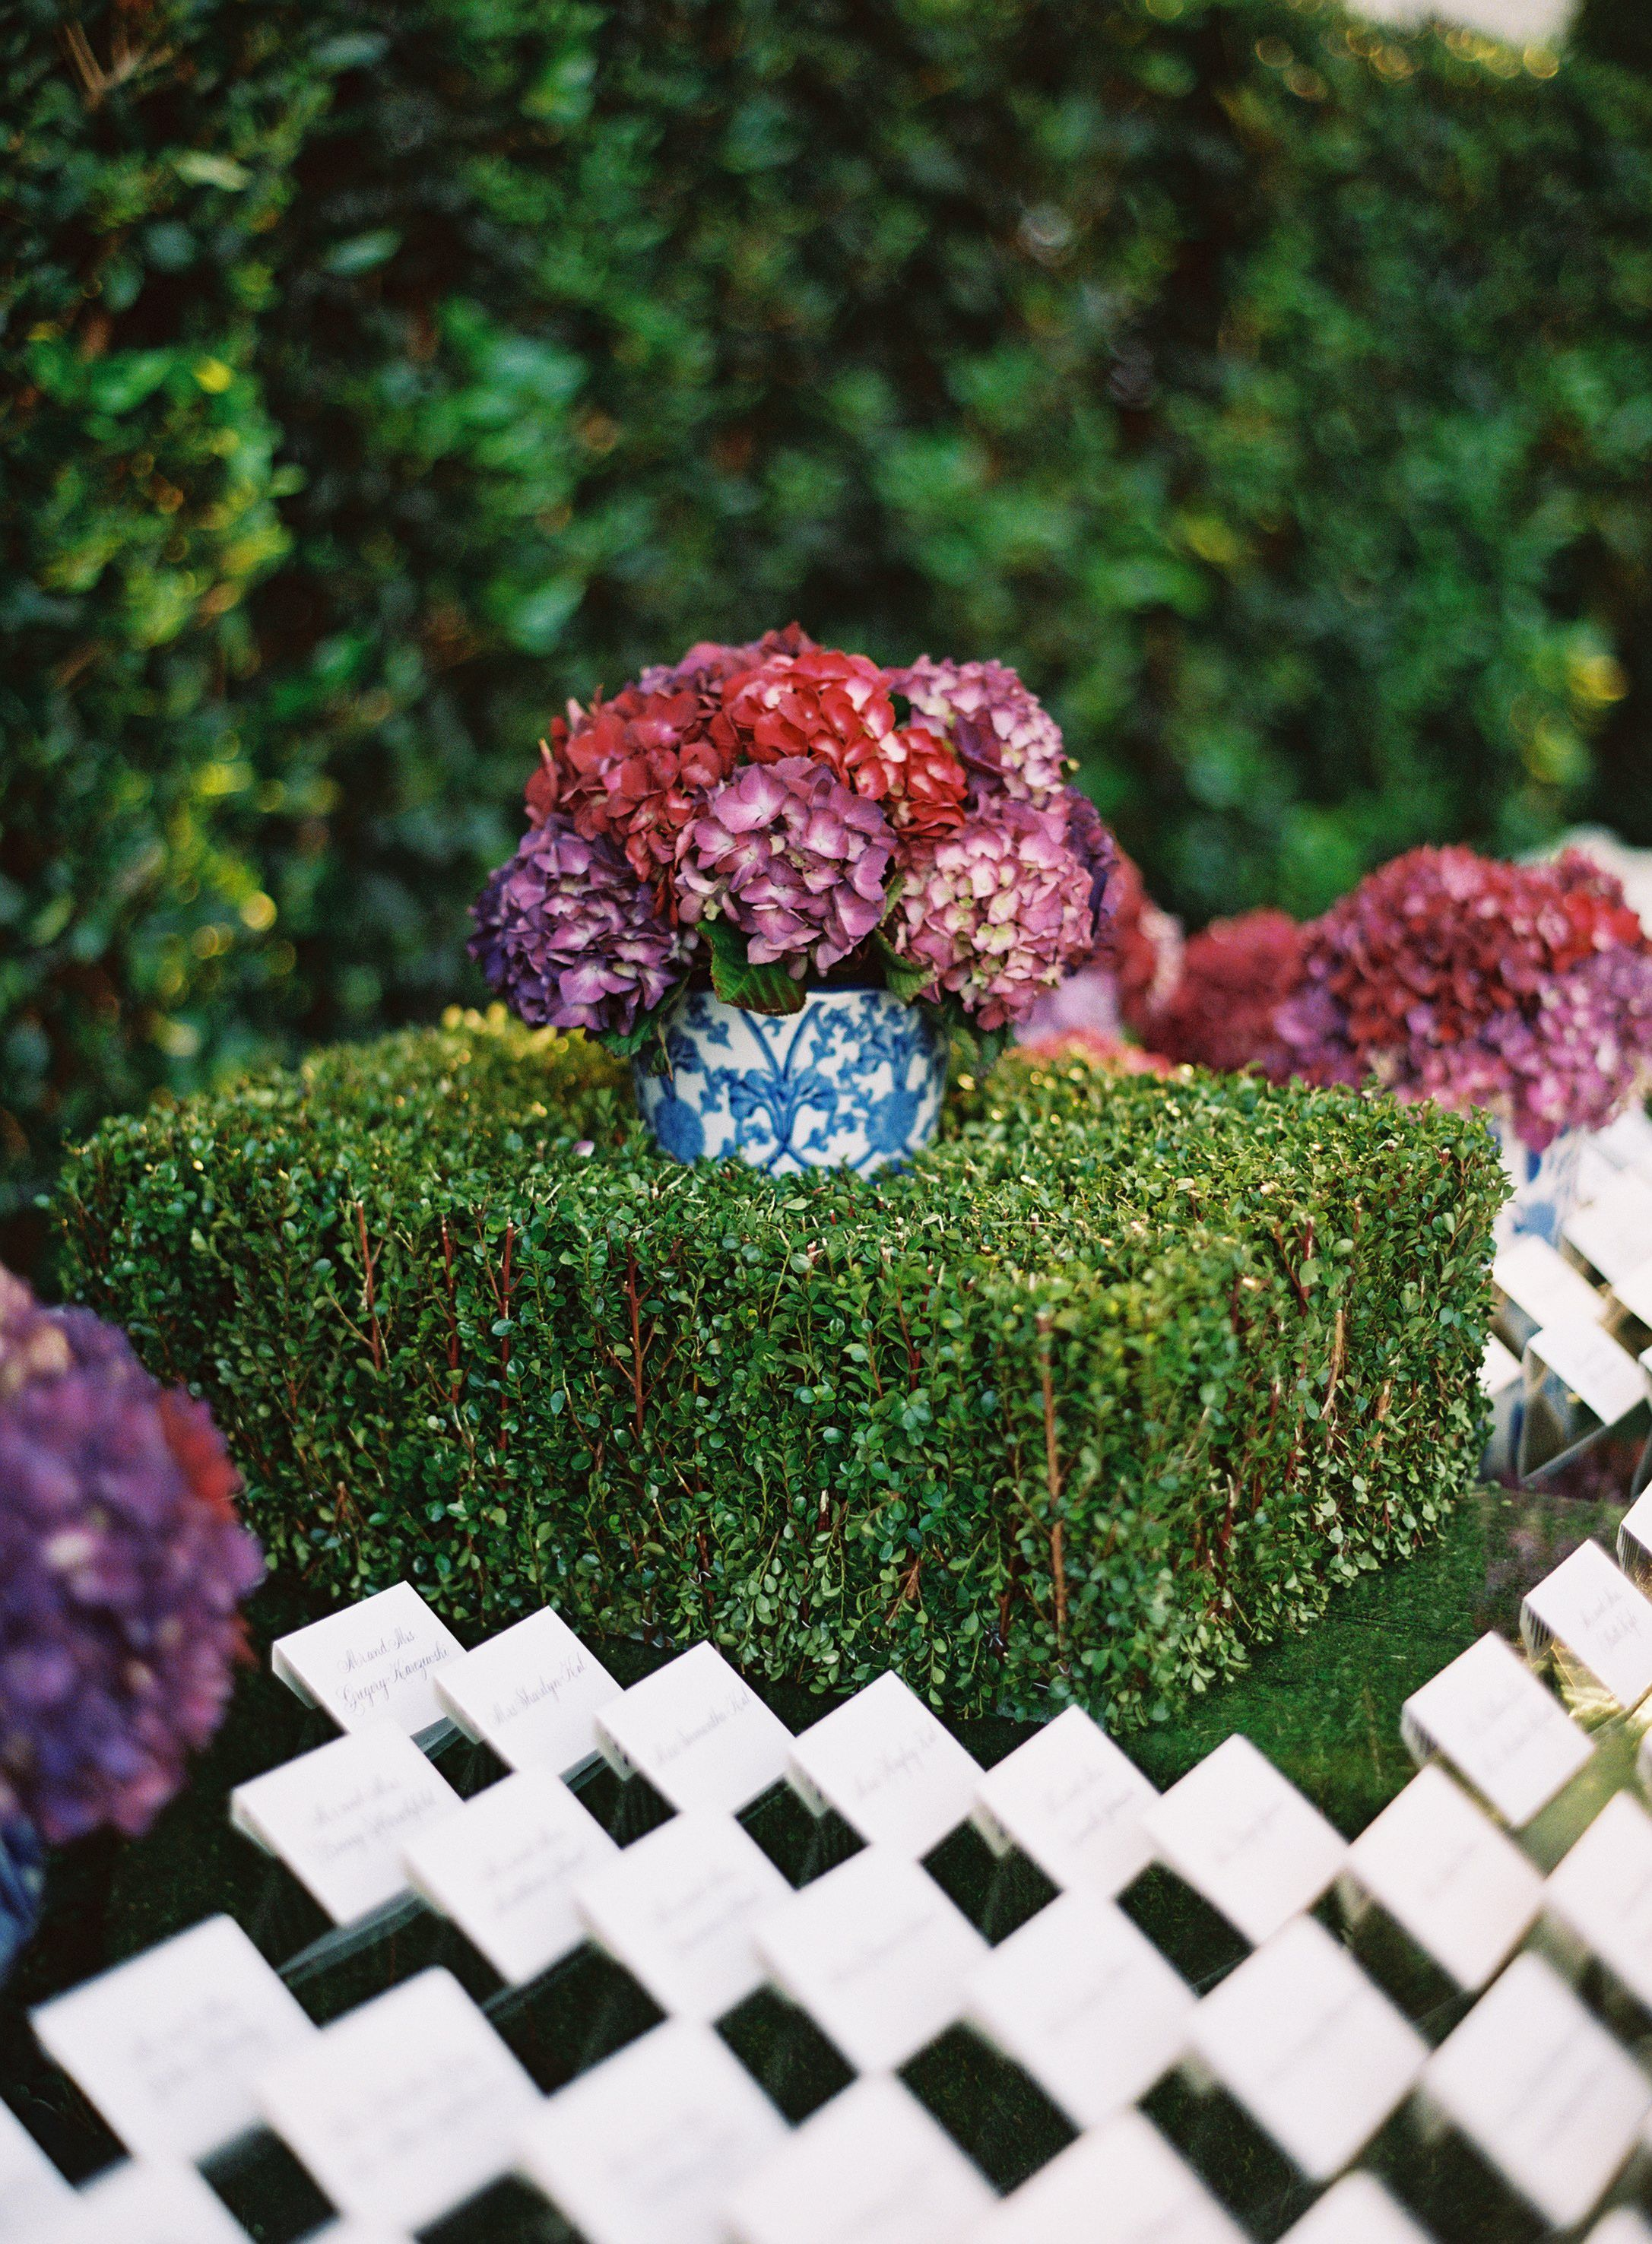 Red Hydrangea Arrangement Sitting on Manicured Hedge | Photography: Jose Villa Photography. Read More: http://www.insideweddings.com/weddings/incredible-rooftop-rehearsal-dinner-with-striking-striped-tent/555/